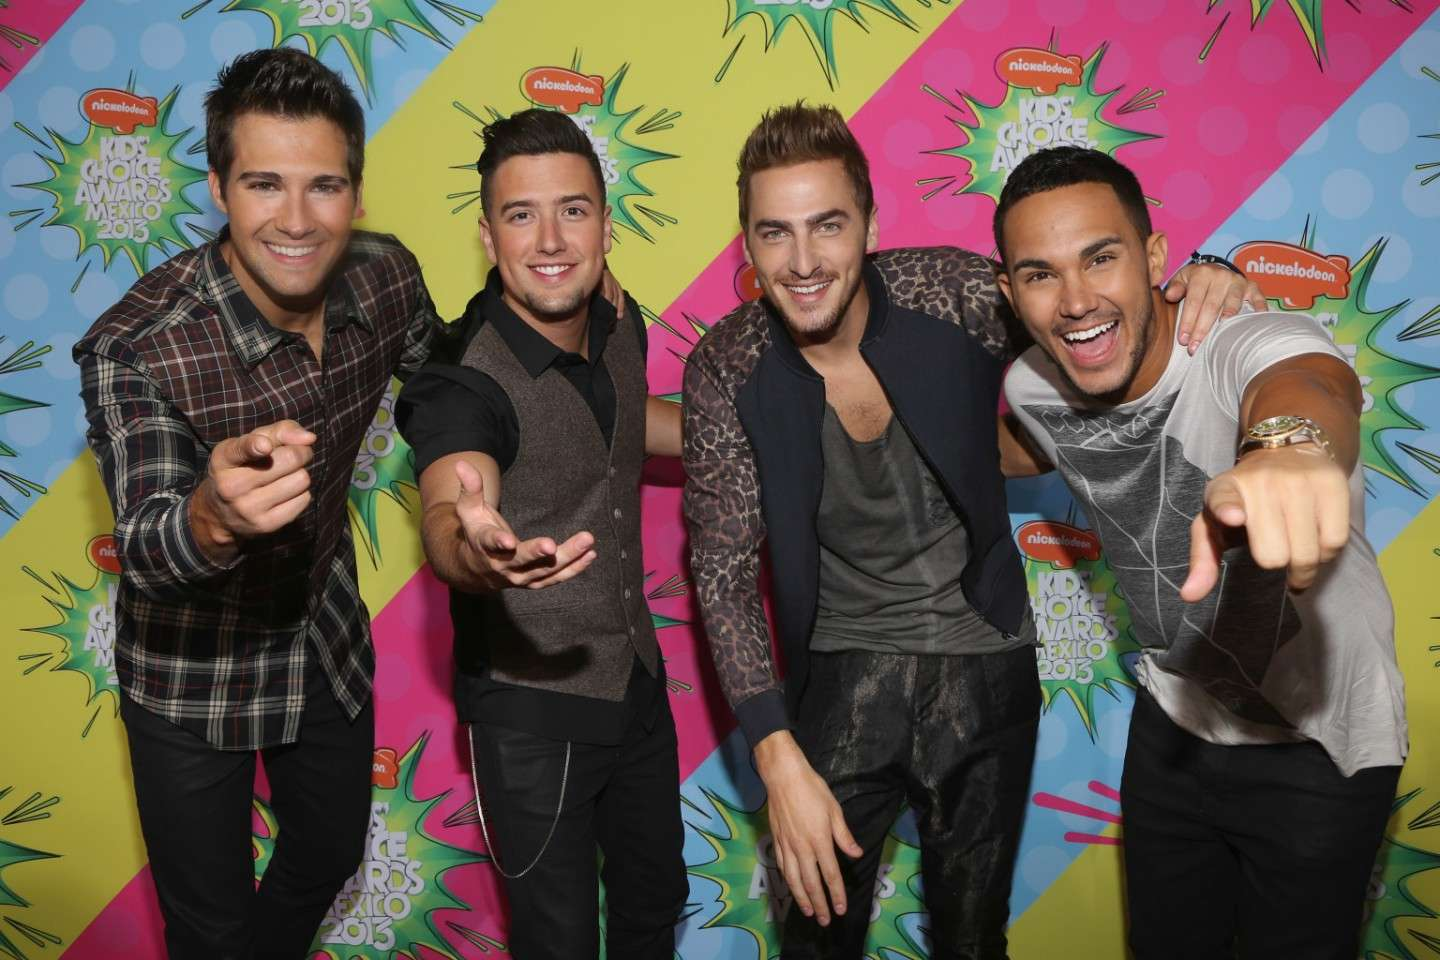 Un saluto dai Big Time Rush